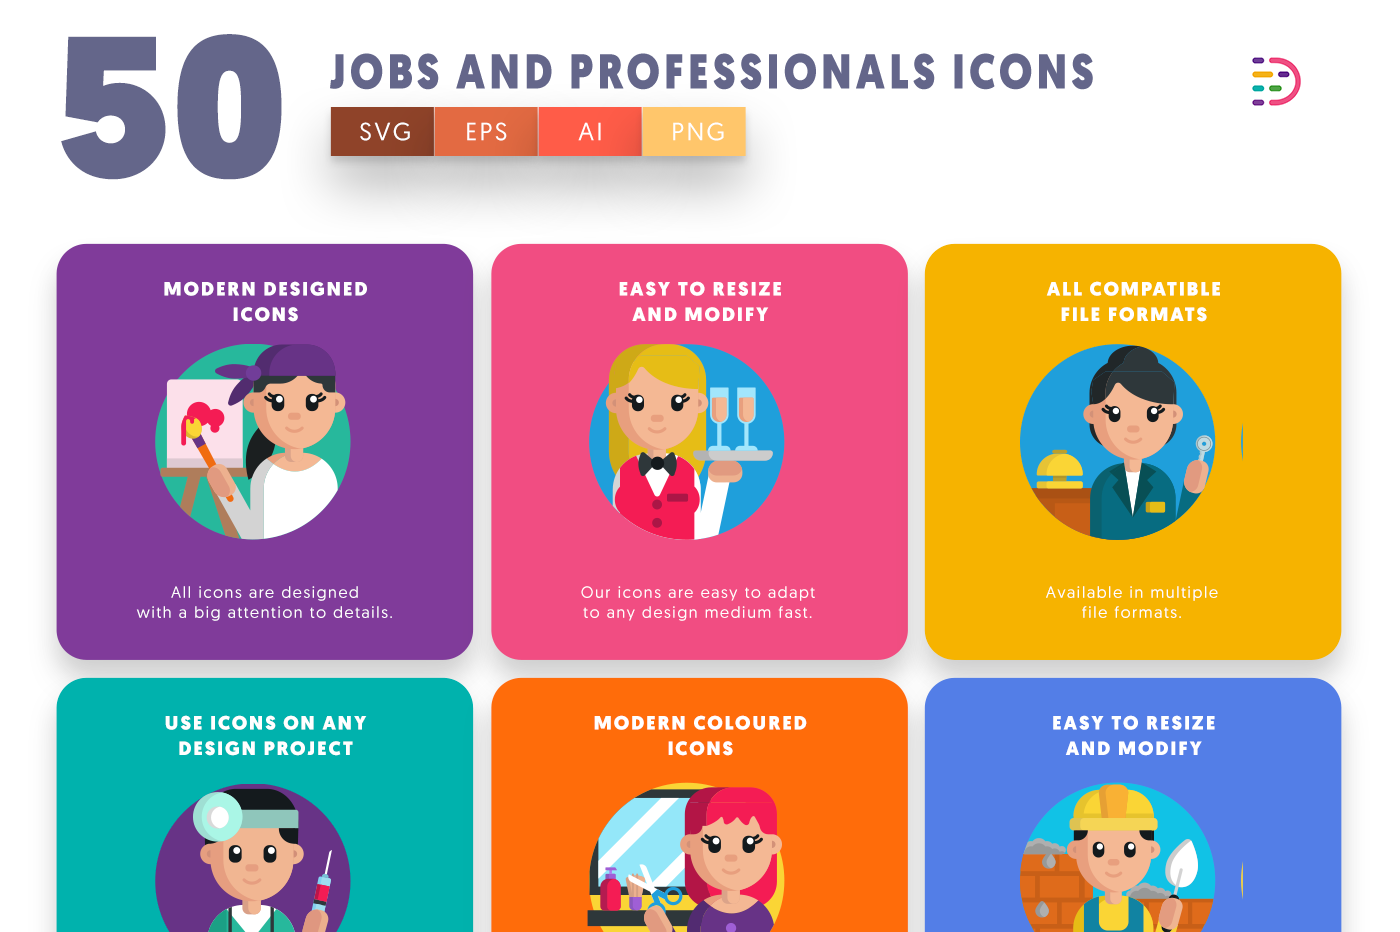 50 Job and Professionals Icons with colored backgrounds